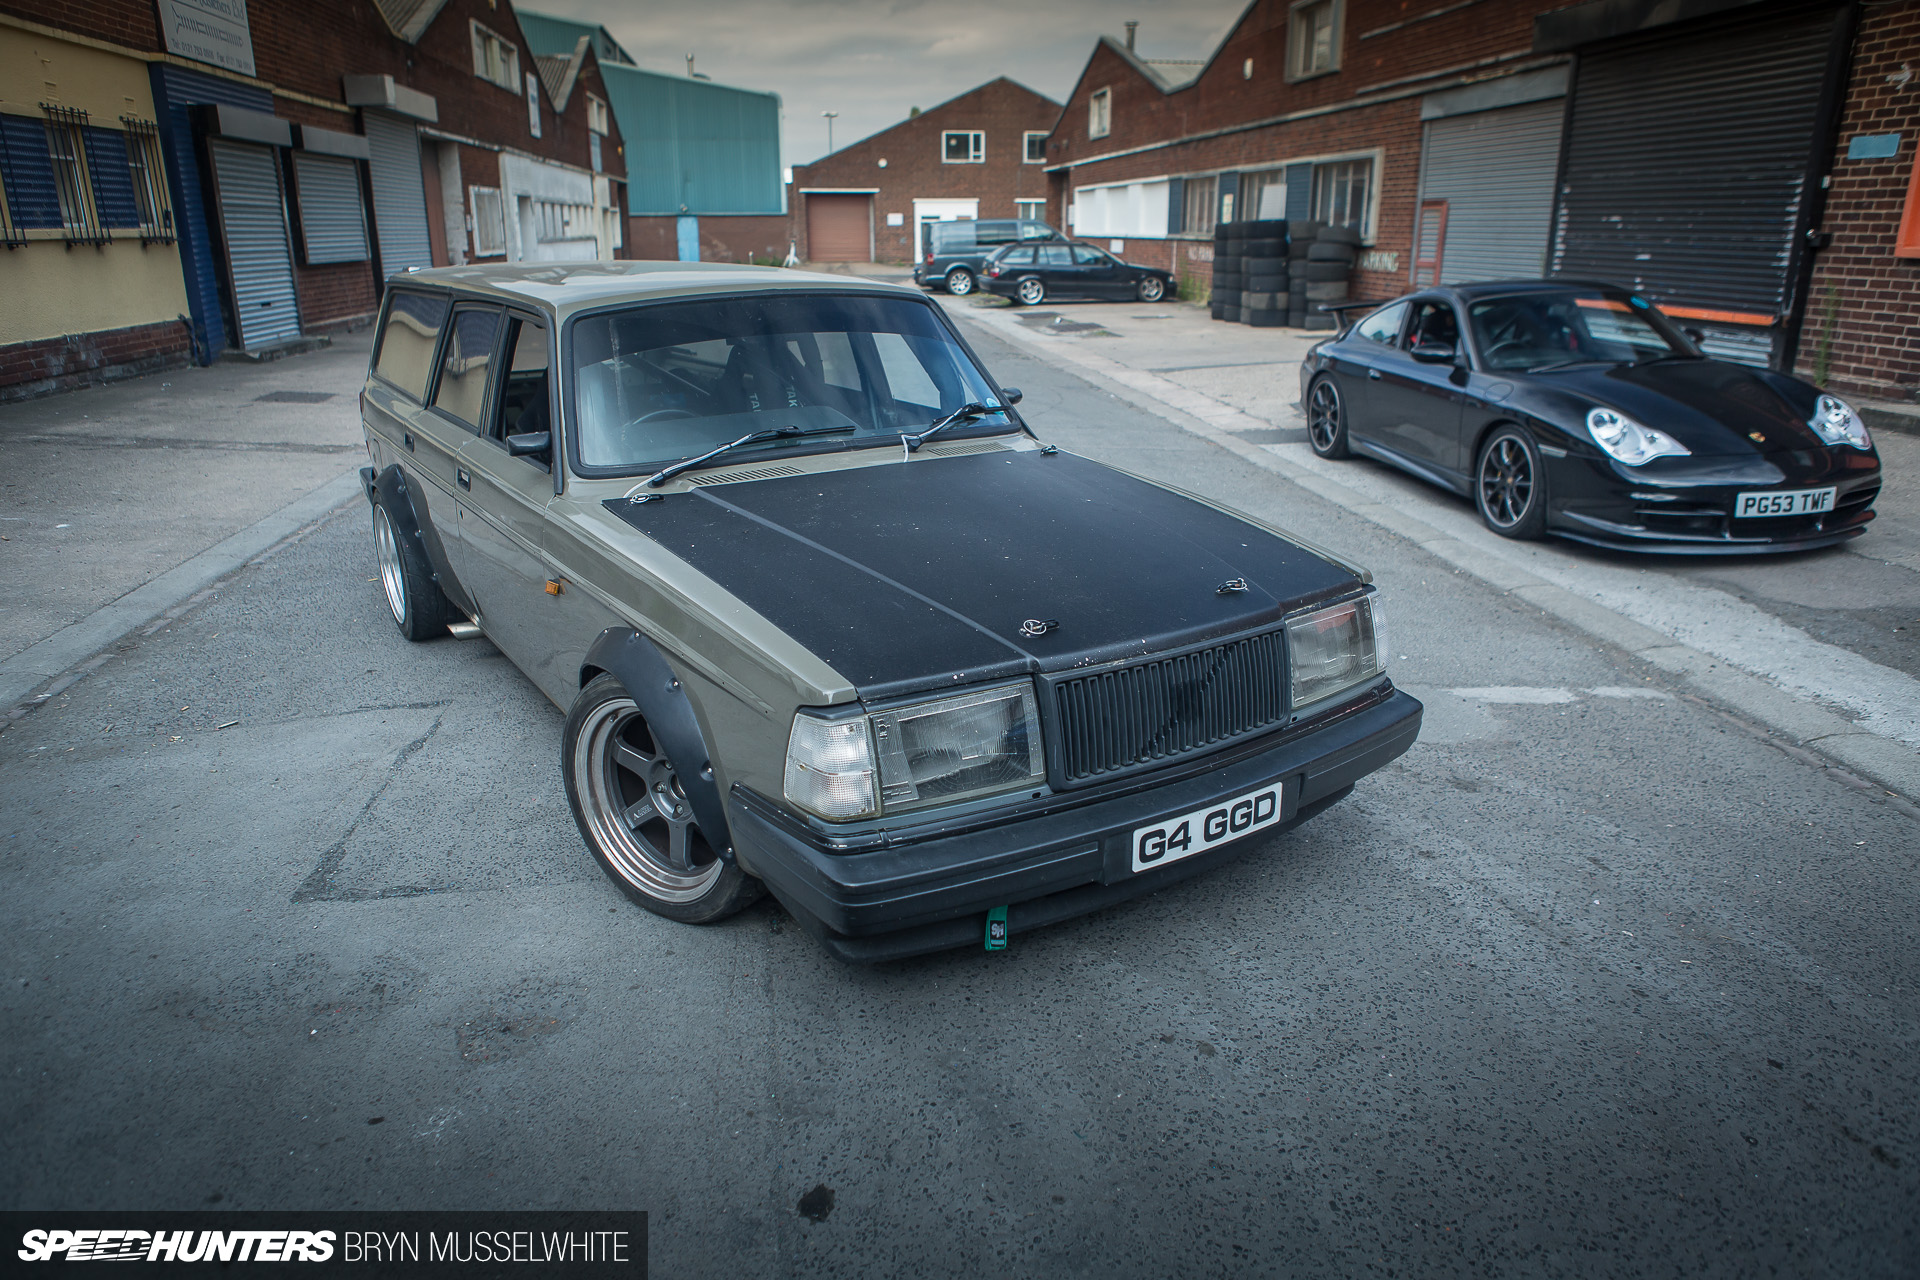 Volvo-turbo-wagon-strip-club-speedhunters-bryn-musselwhite-32-of-179